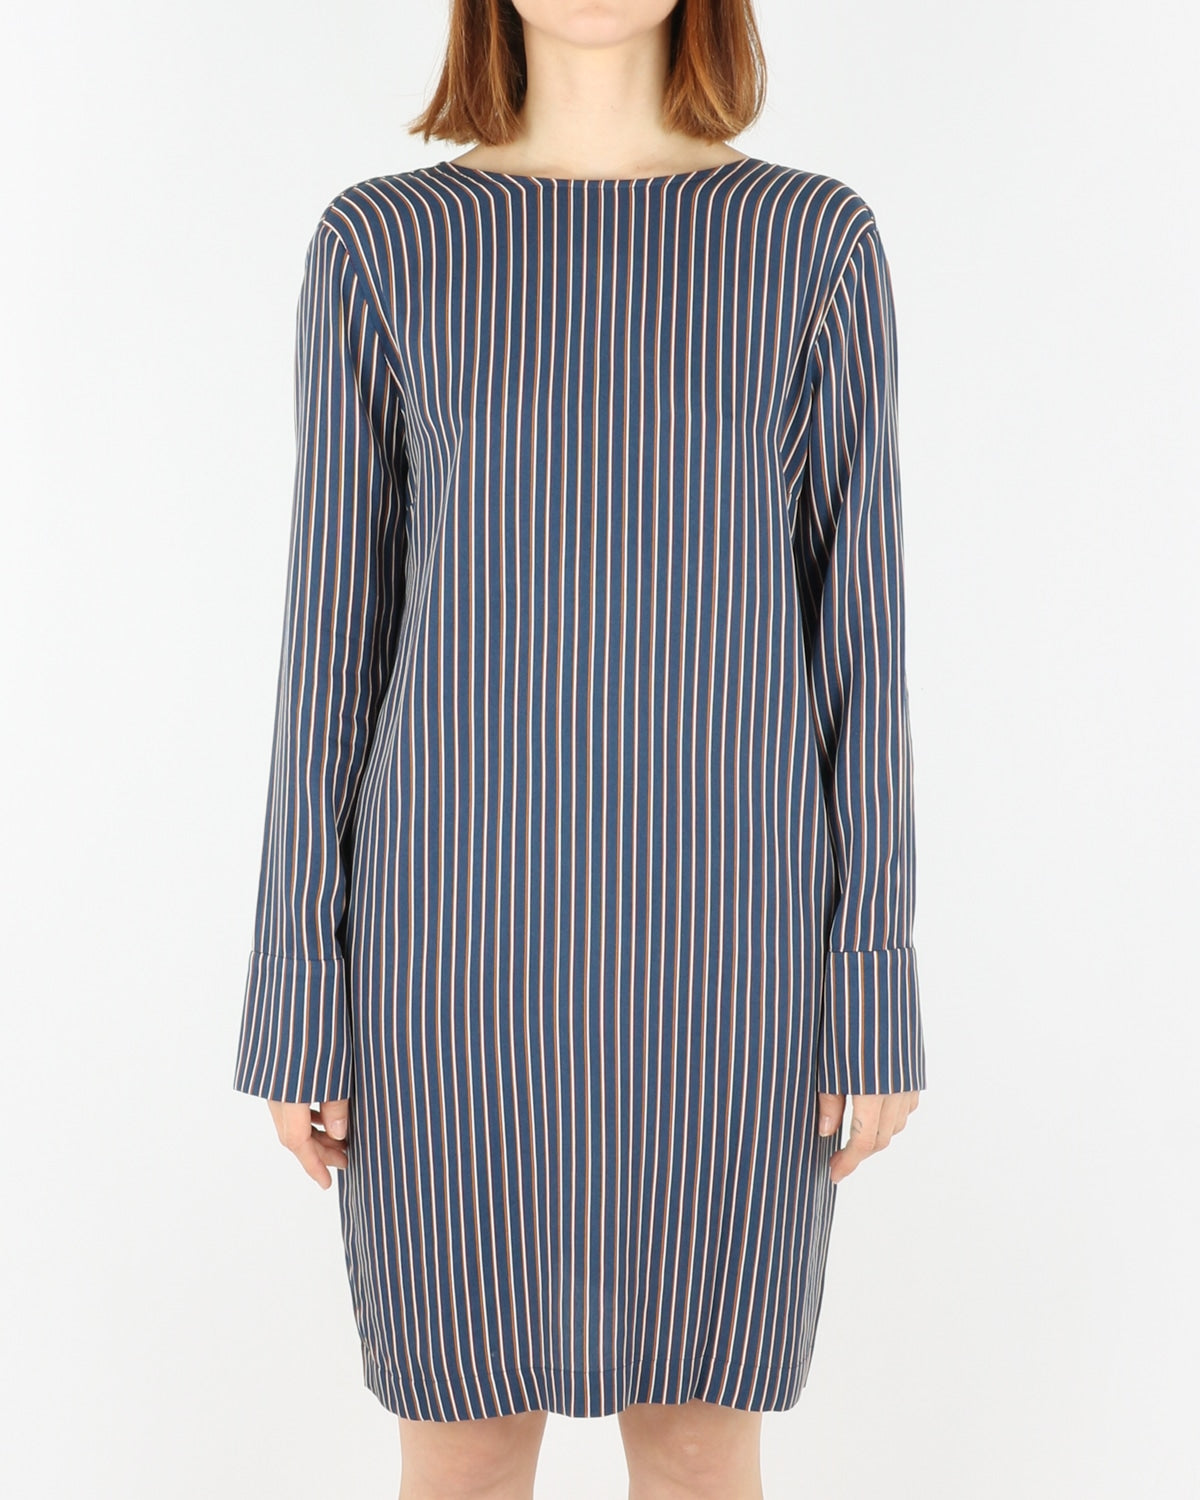 libertine libertine_enough dress_navy_view_2_3